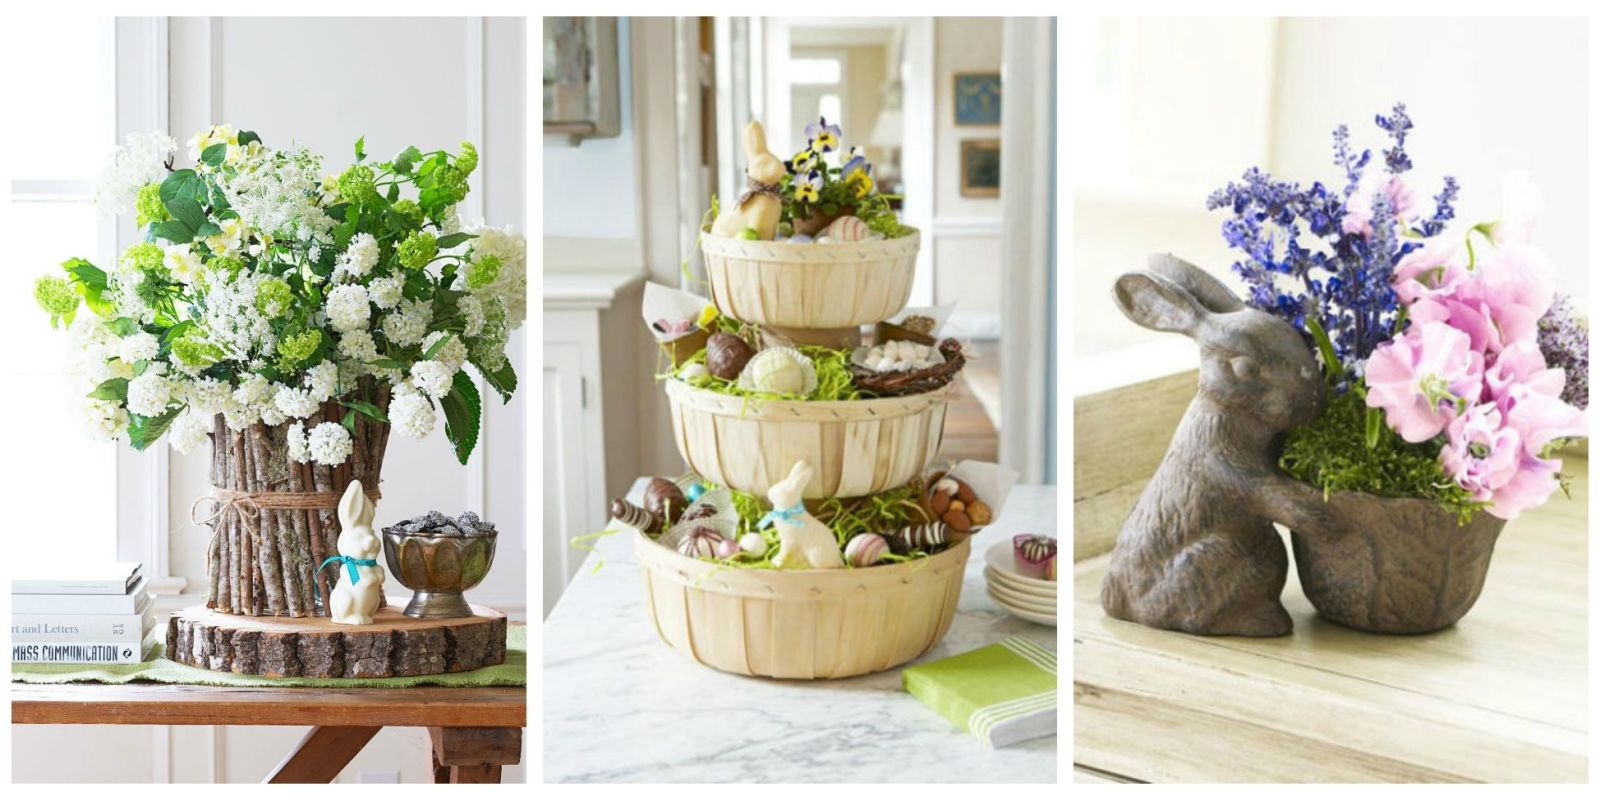 70 diy easter decorations ideas for homemade easter for Diy easter decorations home